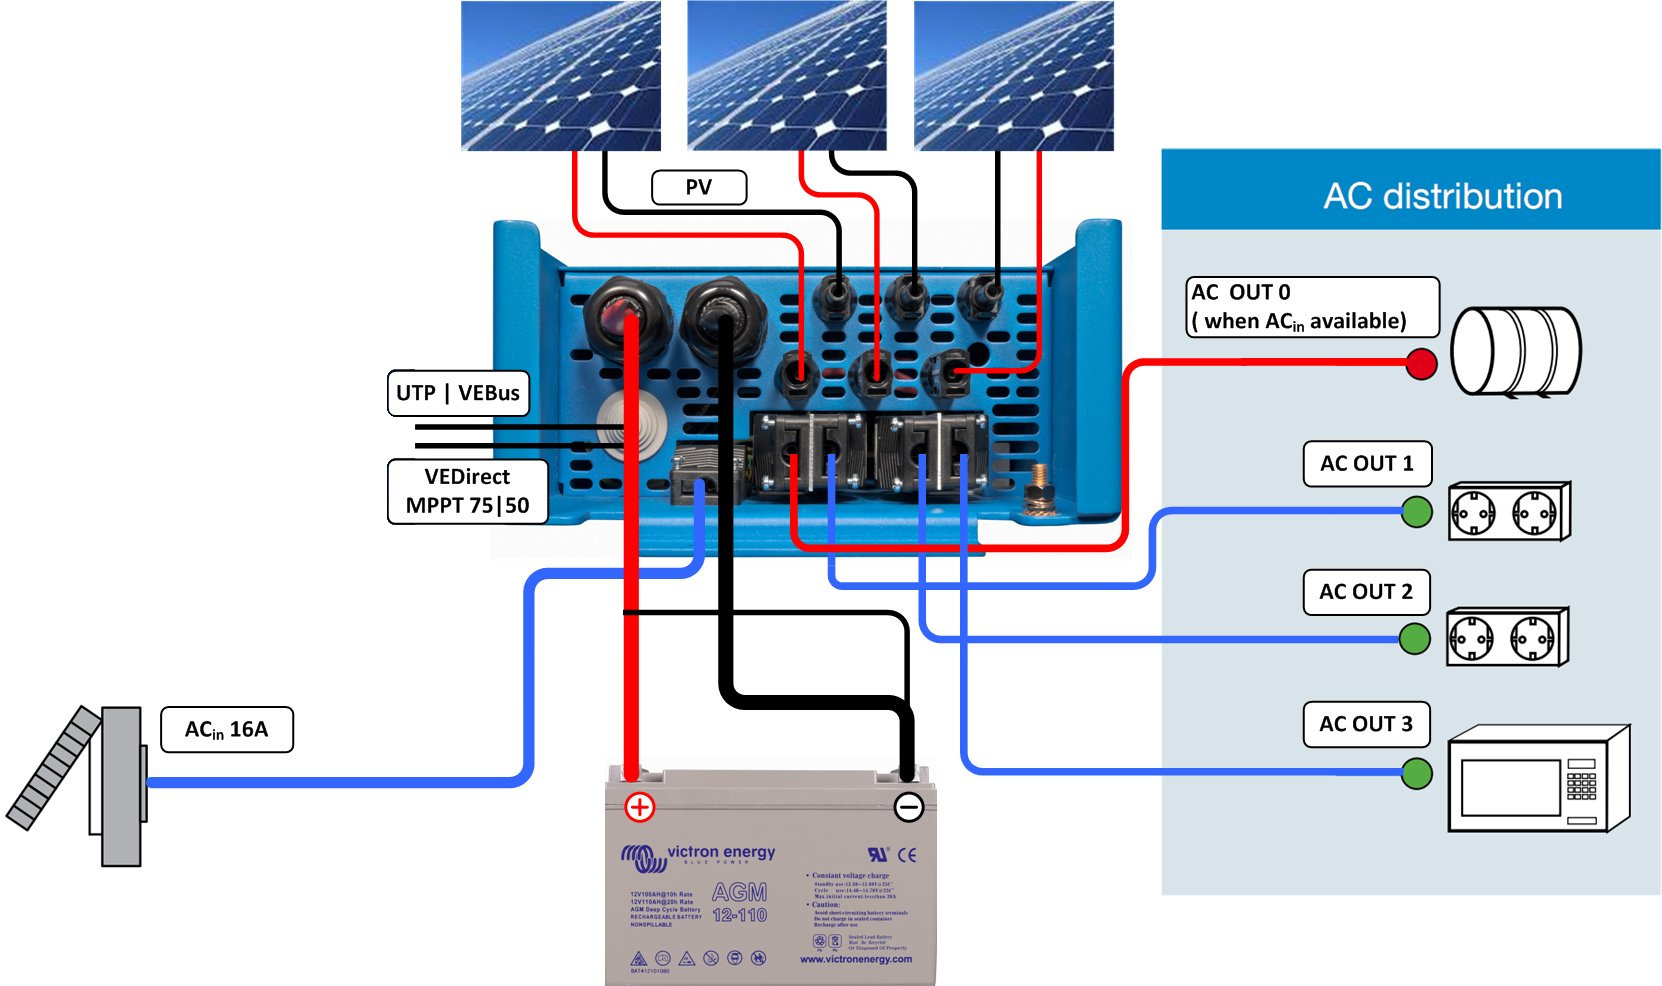 12v Car Battery Charger Wiring Diagram Diagrams For Dummies Simple 12 Volt Gel Cell Circuit Share Solar Power Kits Homes Diy Tree Energy Schematic Automatic